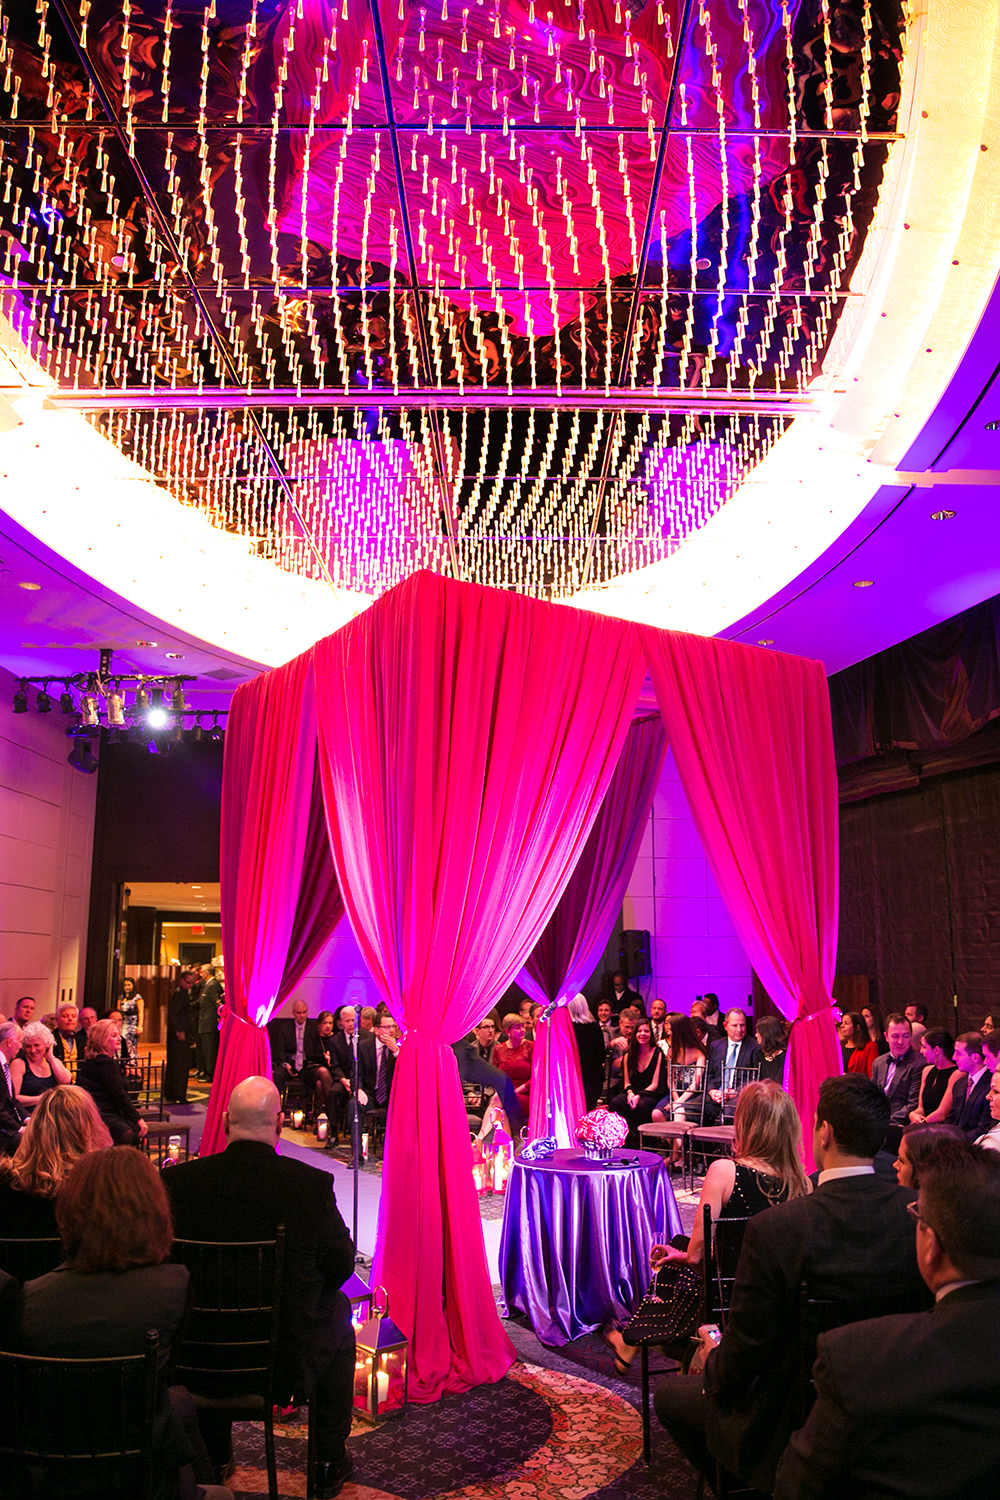 Indian wedding ceremony at Mandarin Oriental Hotel NY